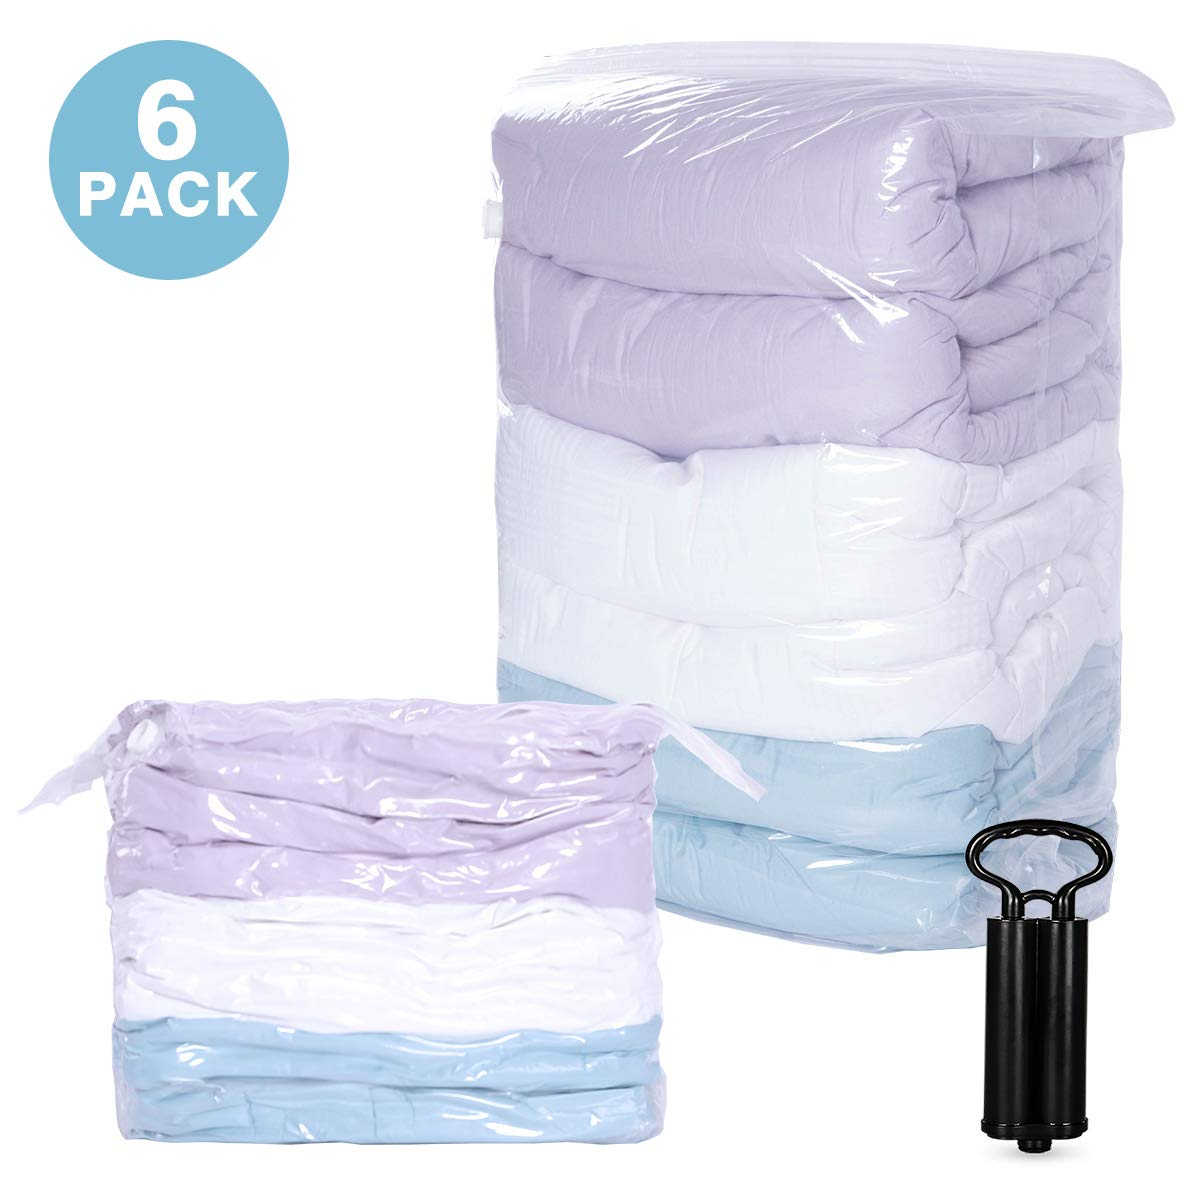 Hi Storage Cube Space Saver Vacuum Storage Bags |6 PCS JUBMO 31''x40''x15''| Vacuum Compression Bags with Travel Hand Pump Included for Comforters, Pillows, Bedding, Blankets by Hi Storage